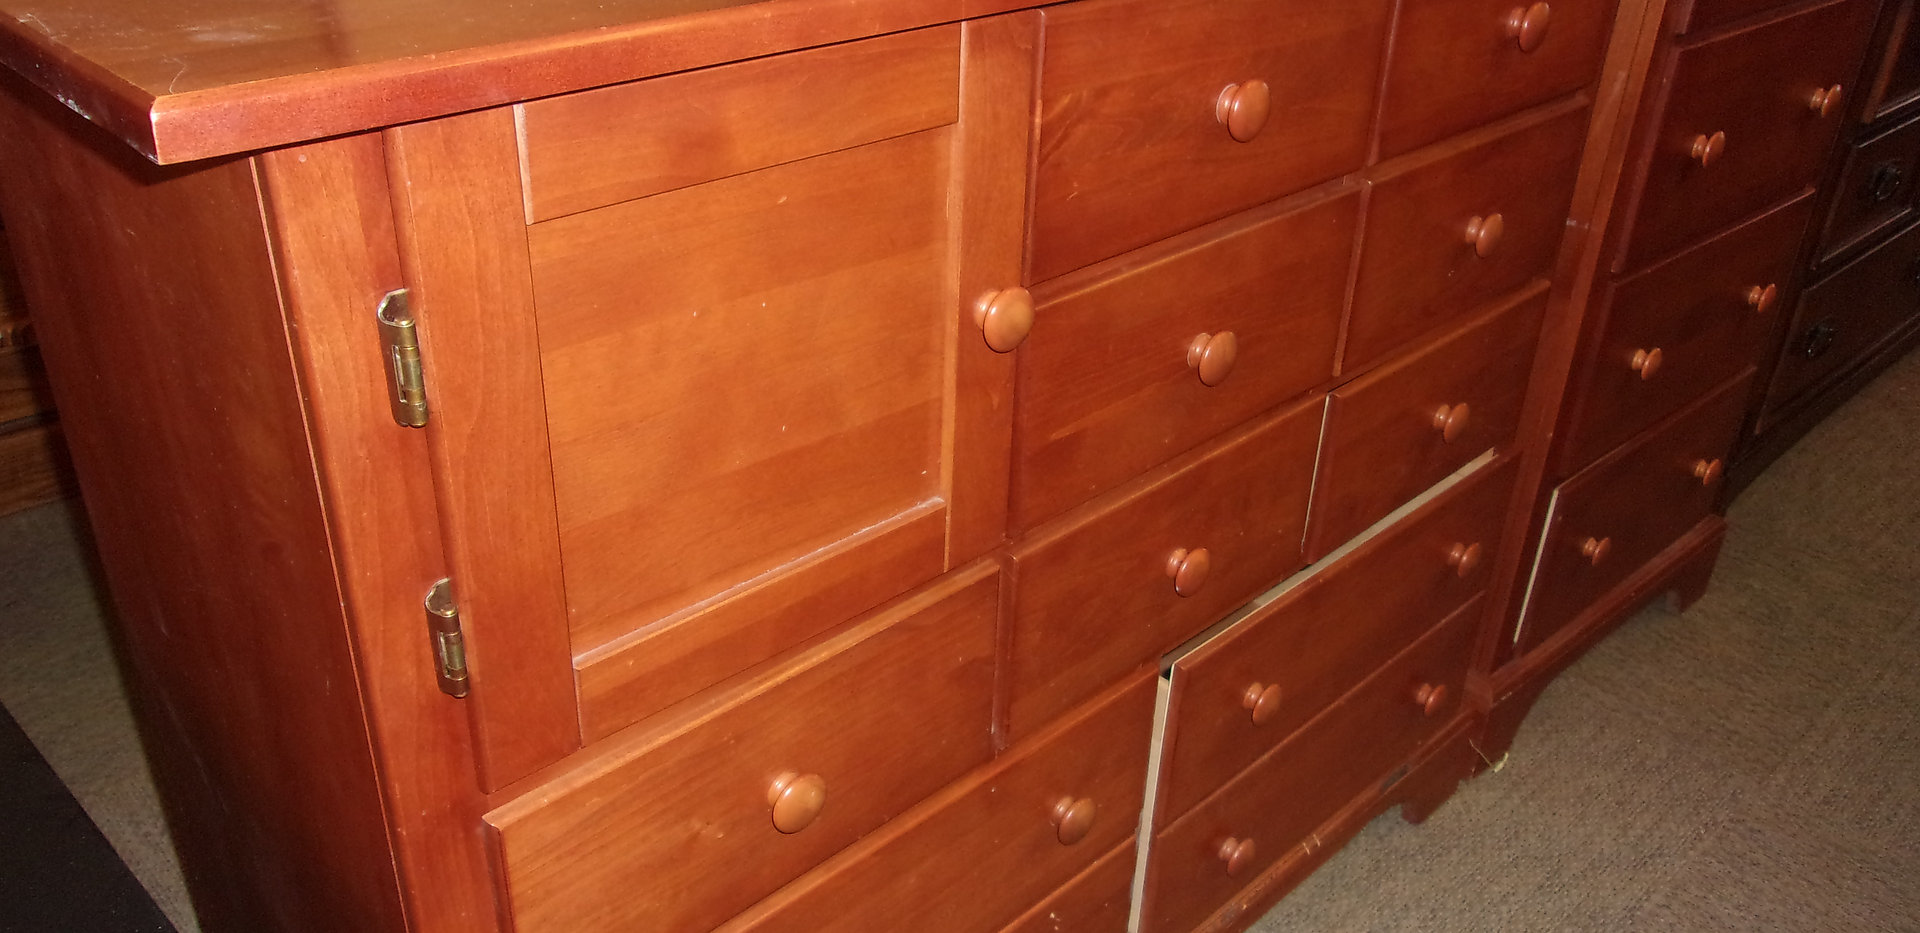 Matches Tall Boy Chest of Drawers